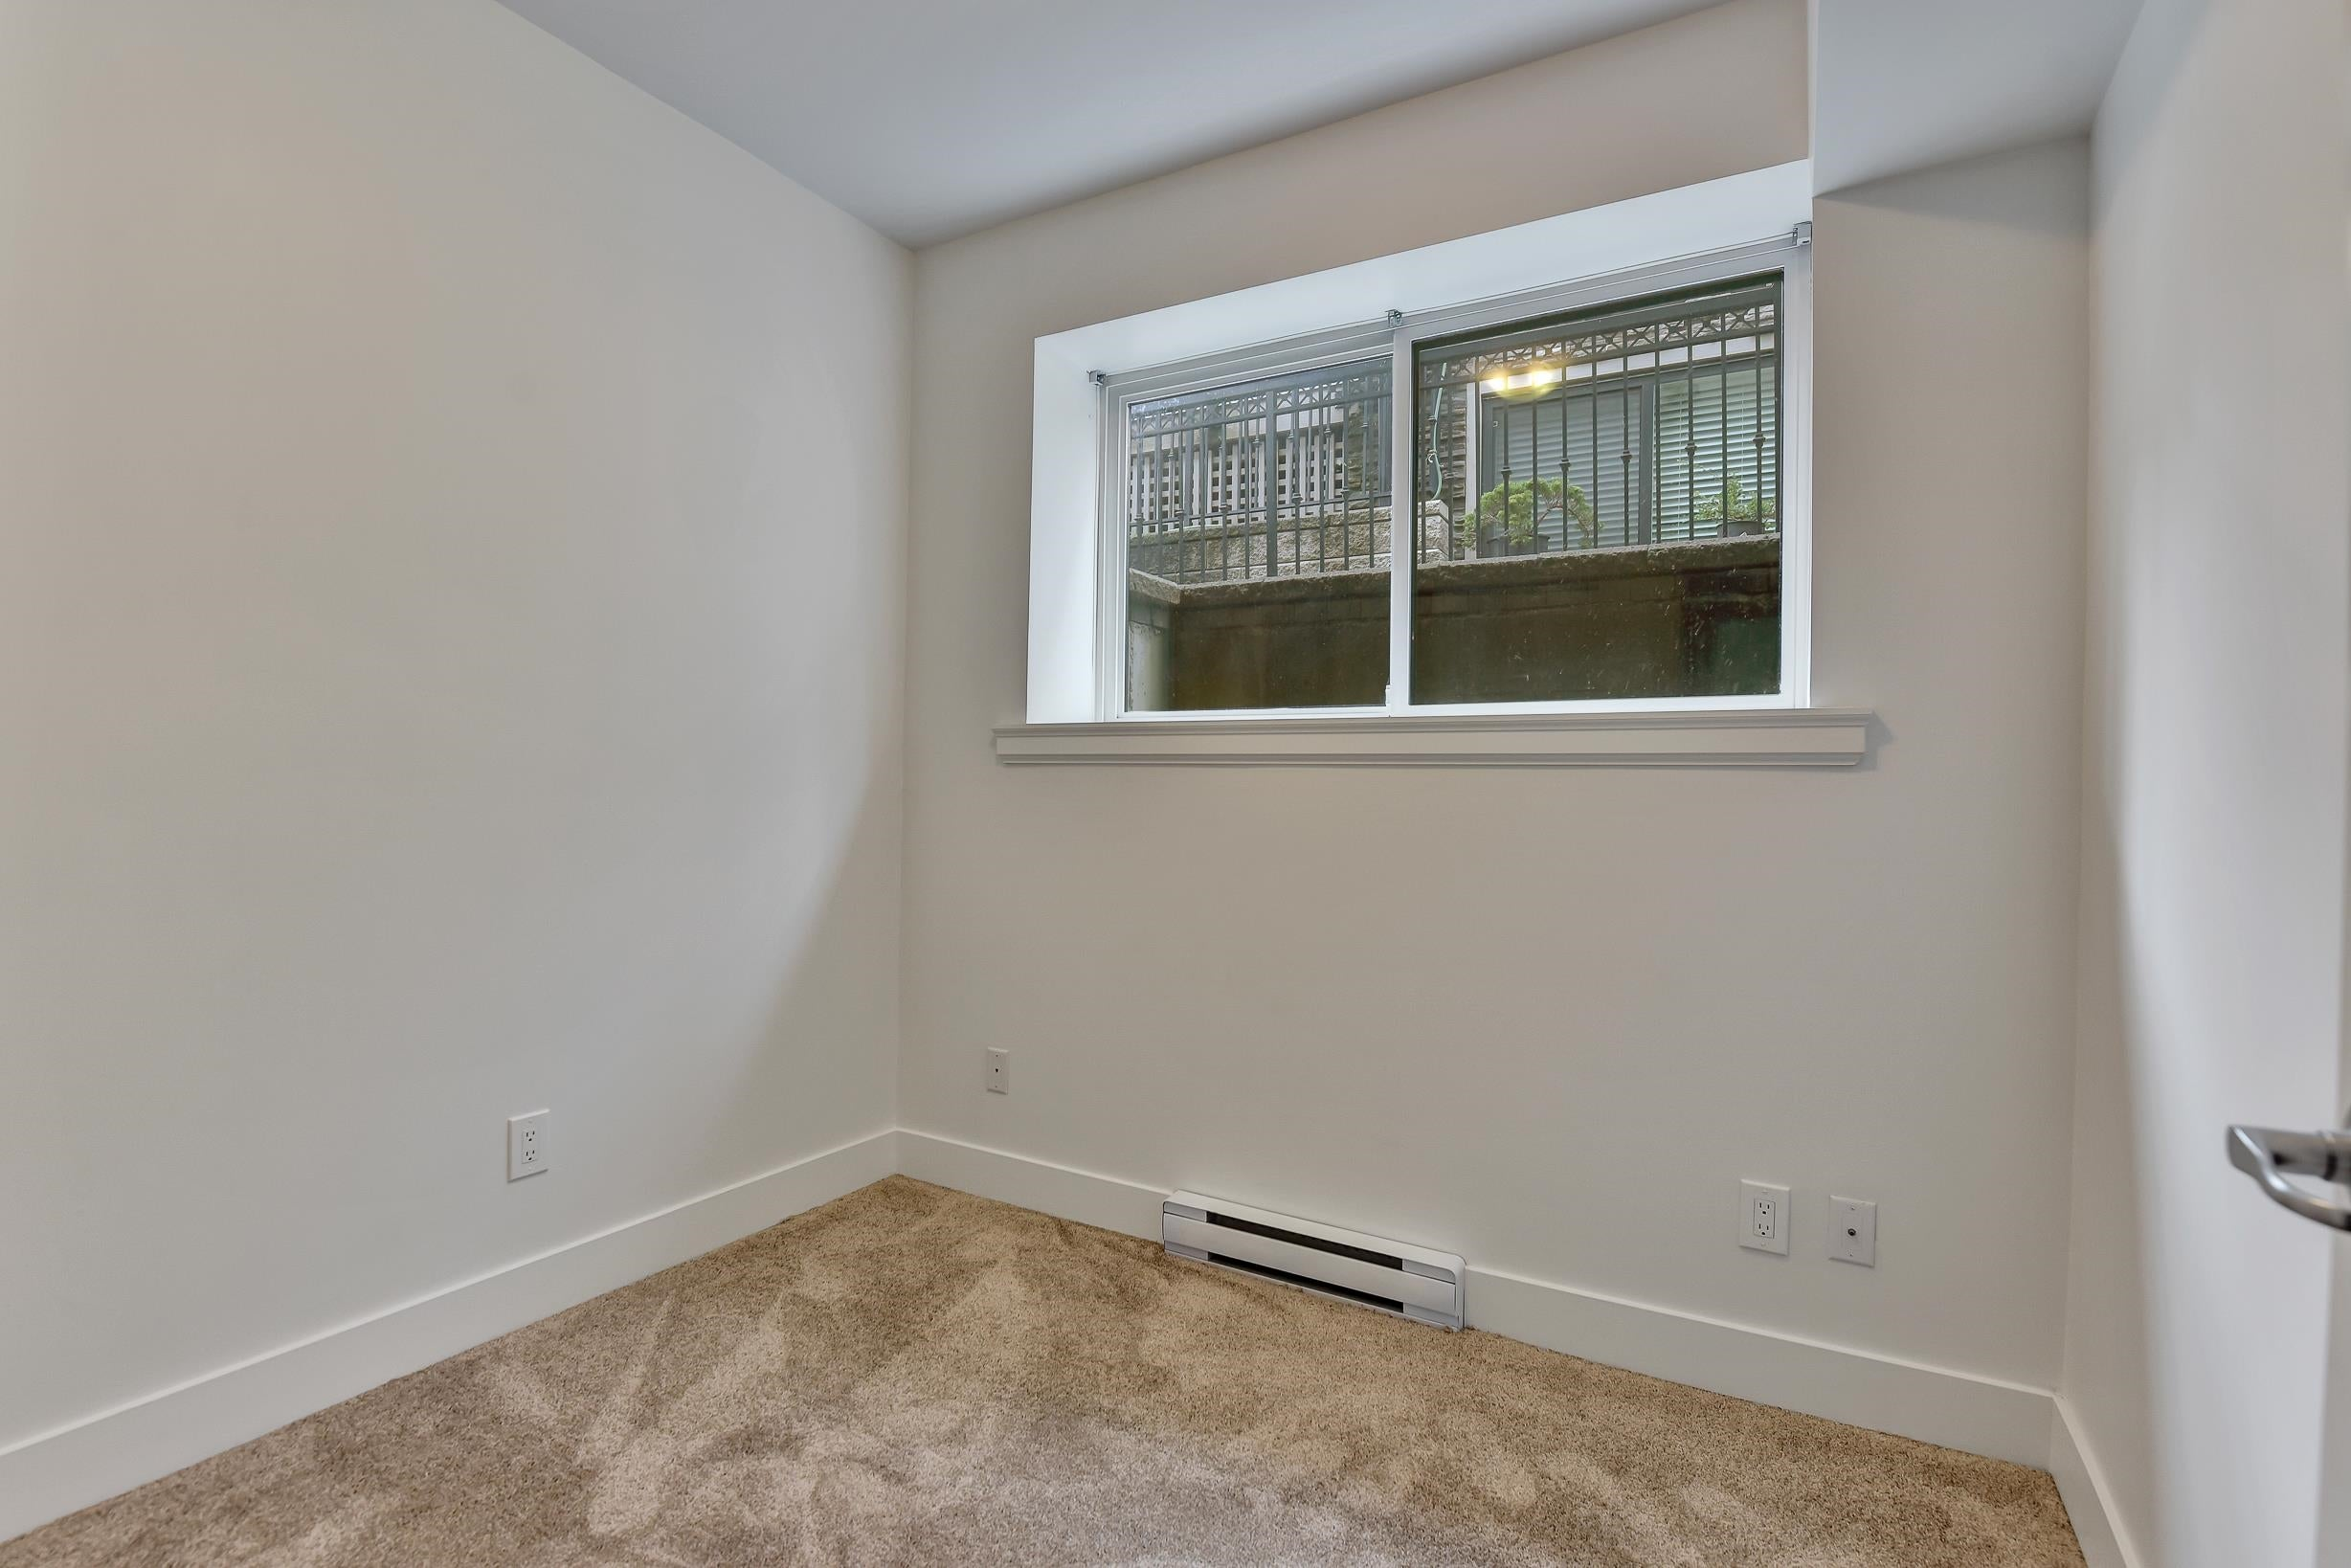 1430 BEWICKE AVENUE - Central Lonsdale 1/2 Duplex for sale, 6 Bedrooms (R2625651) - #24